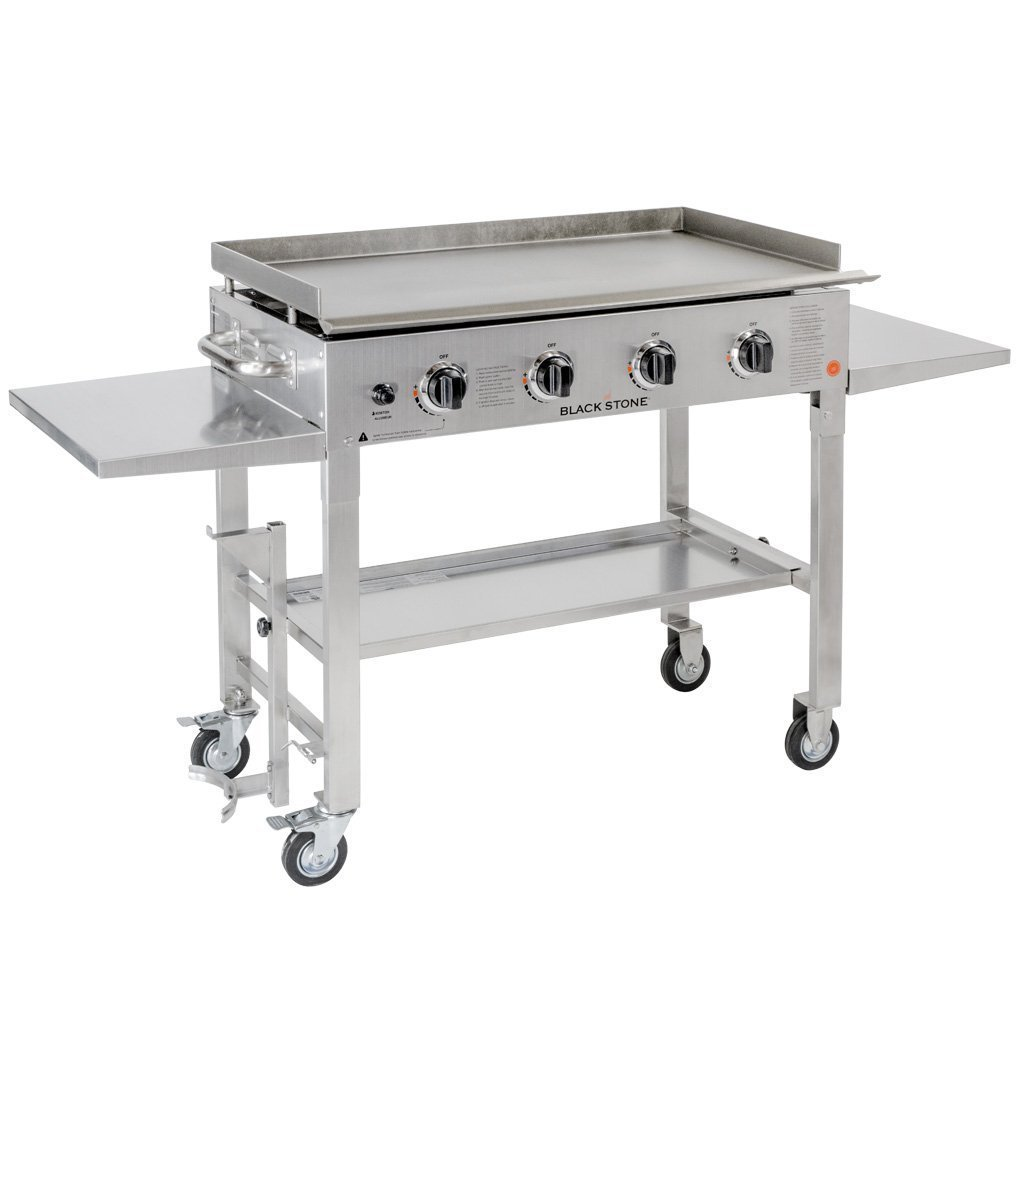 Home Depot Outdoor Grills